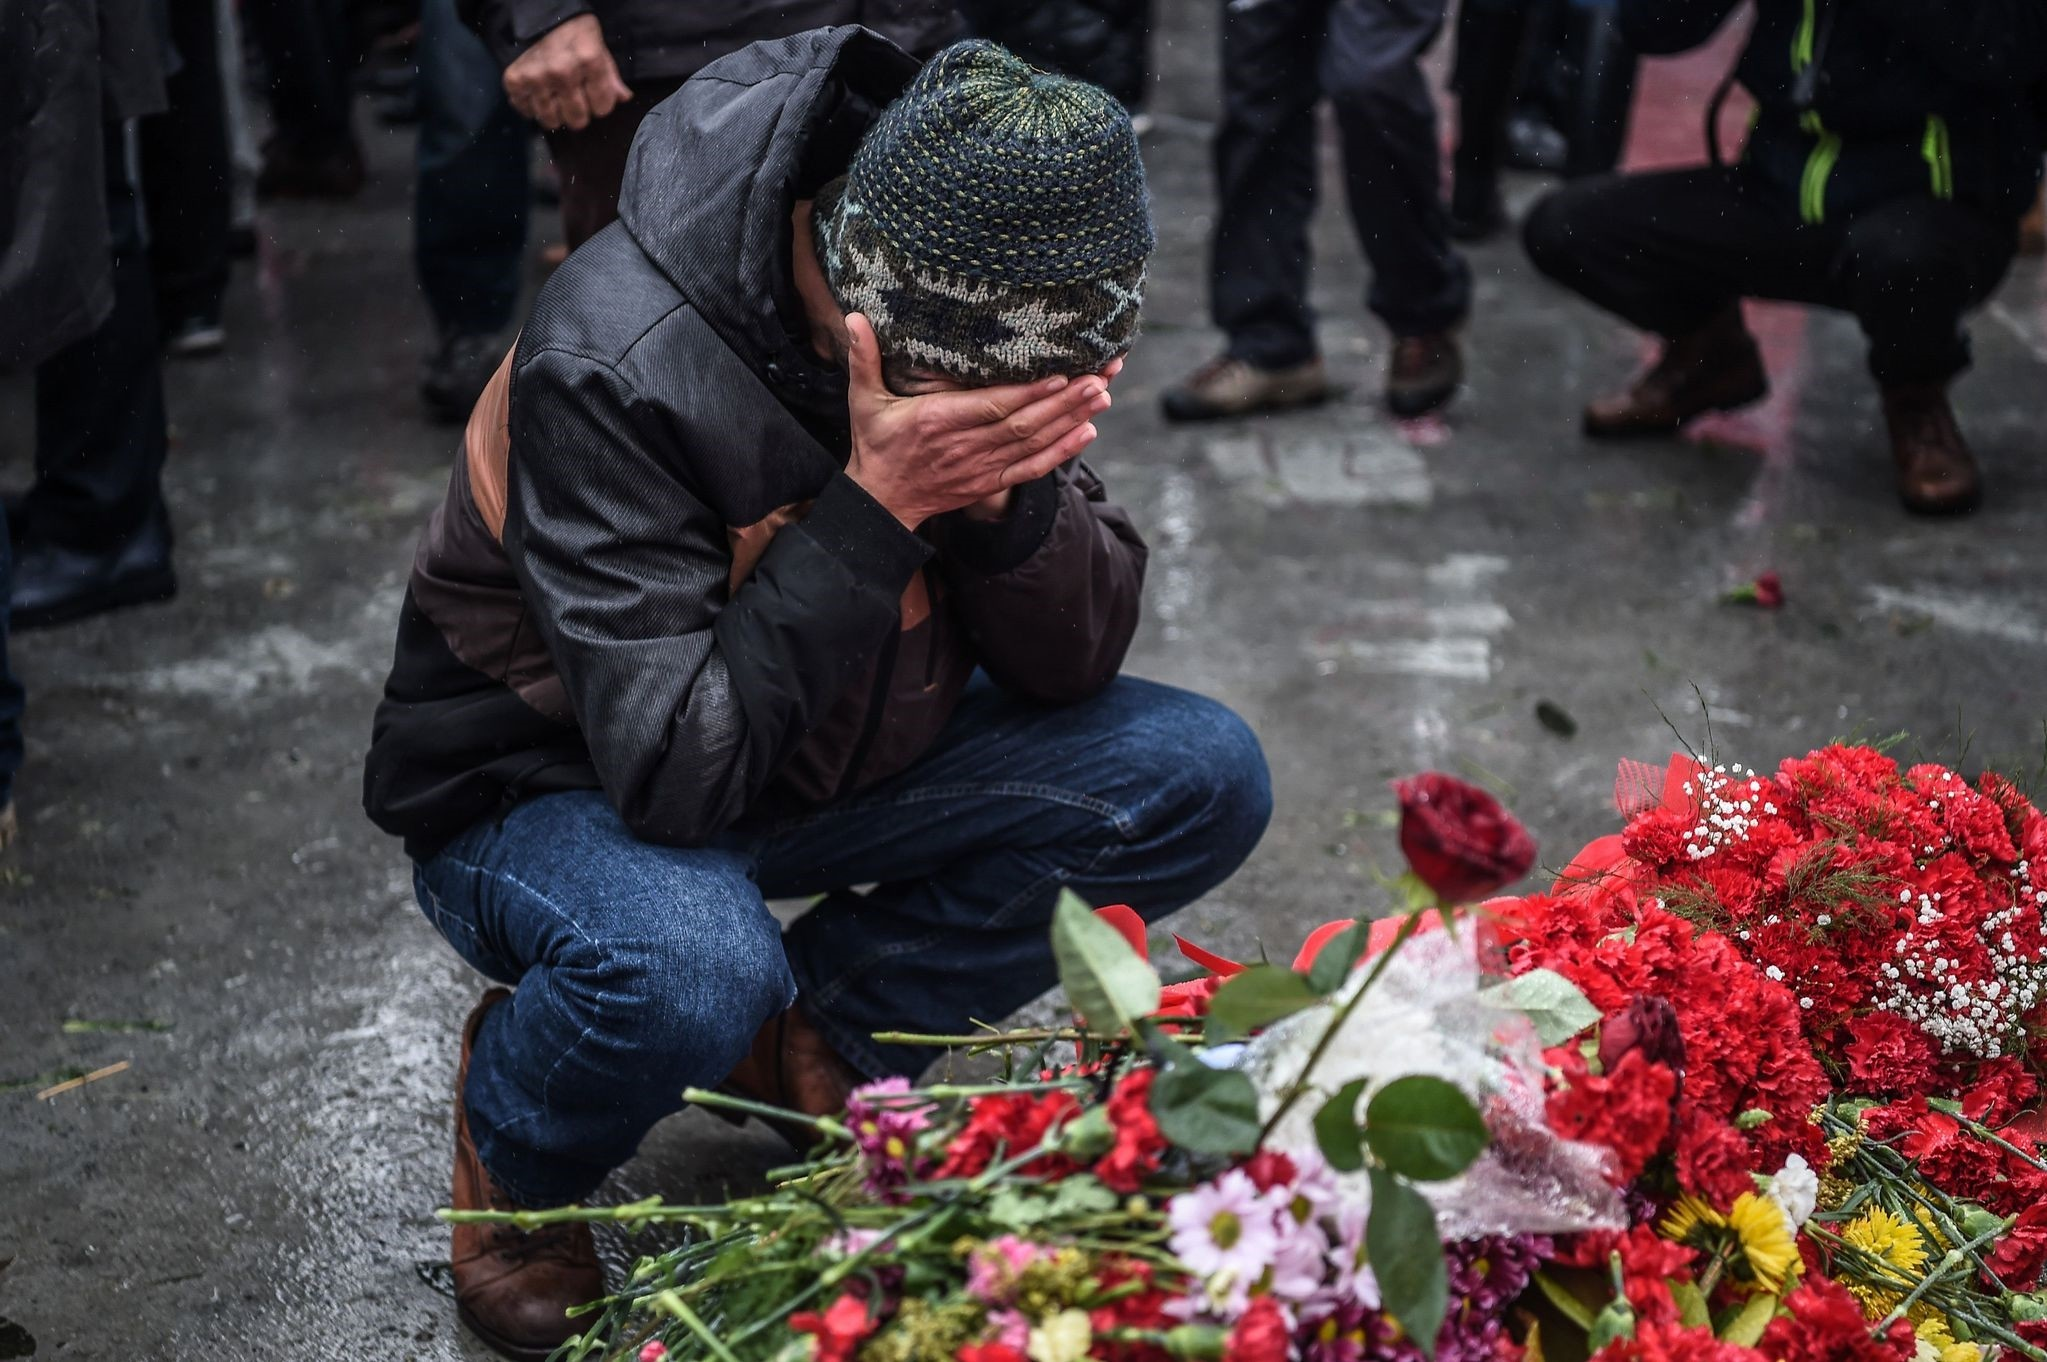 A grieving man reacts before the flowers laid for victims at the site of blasts.